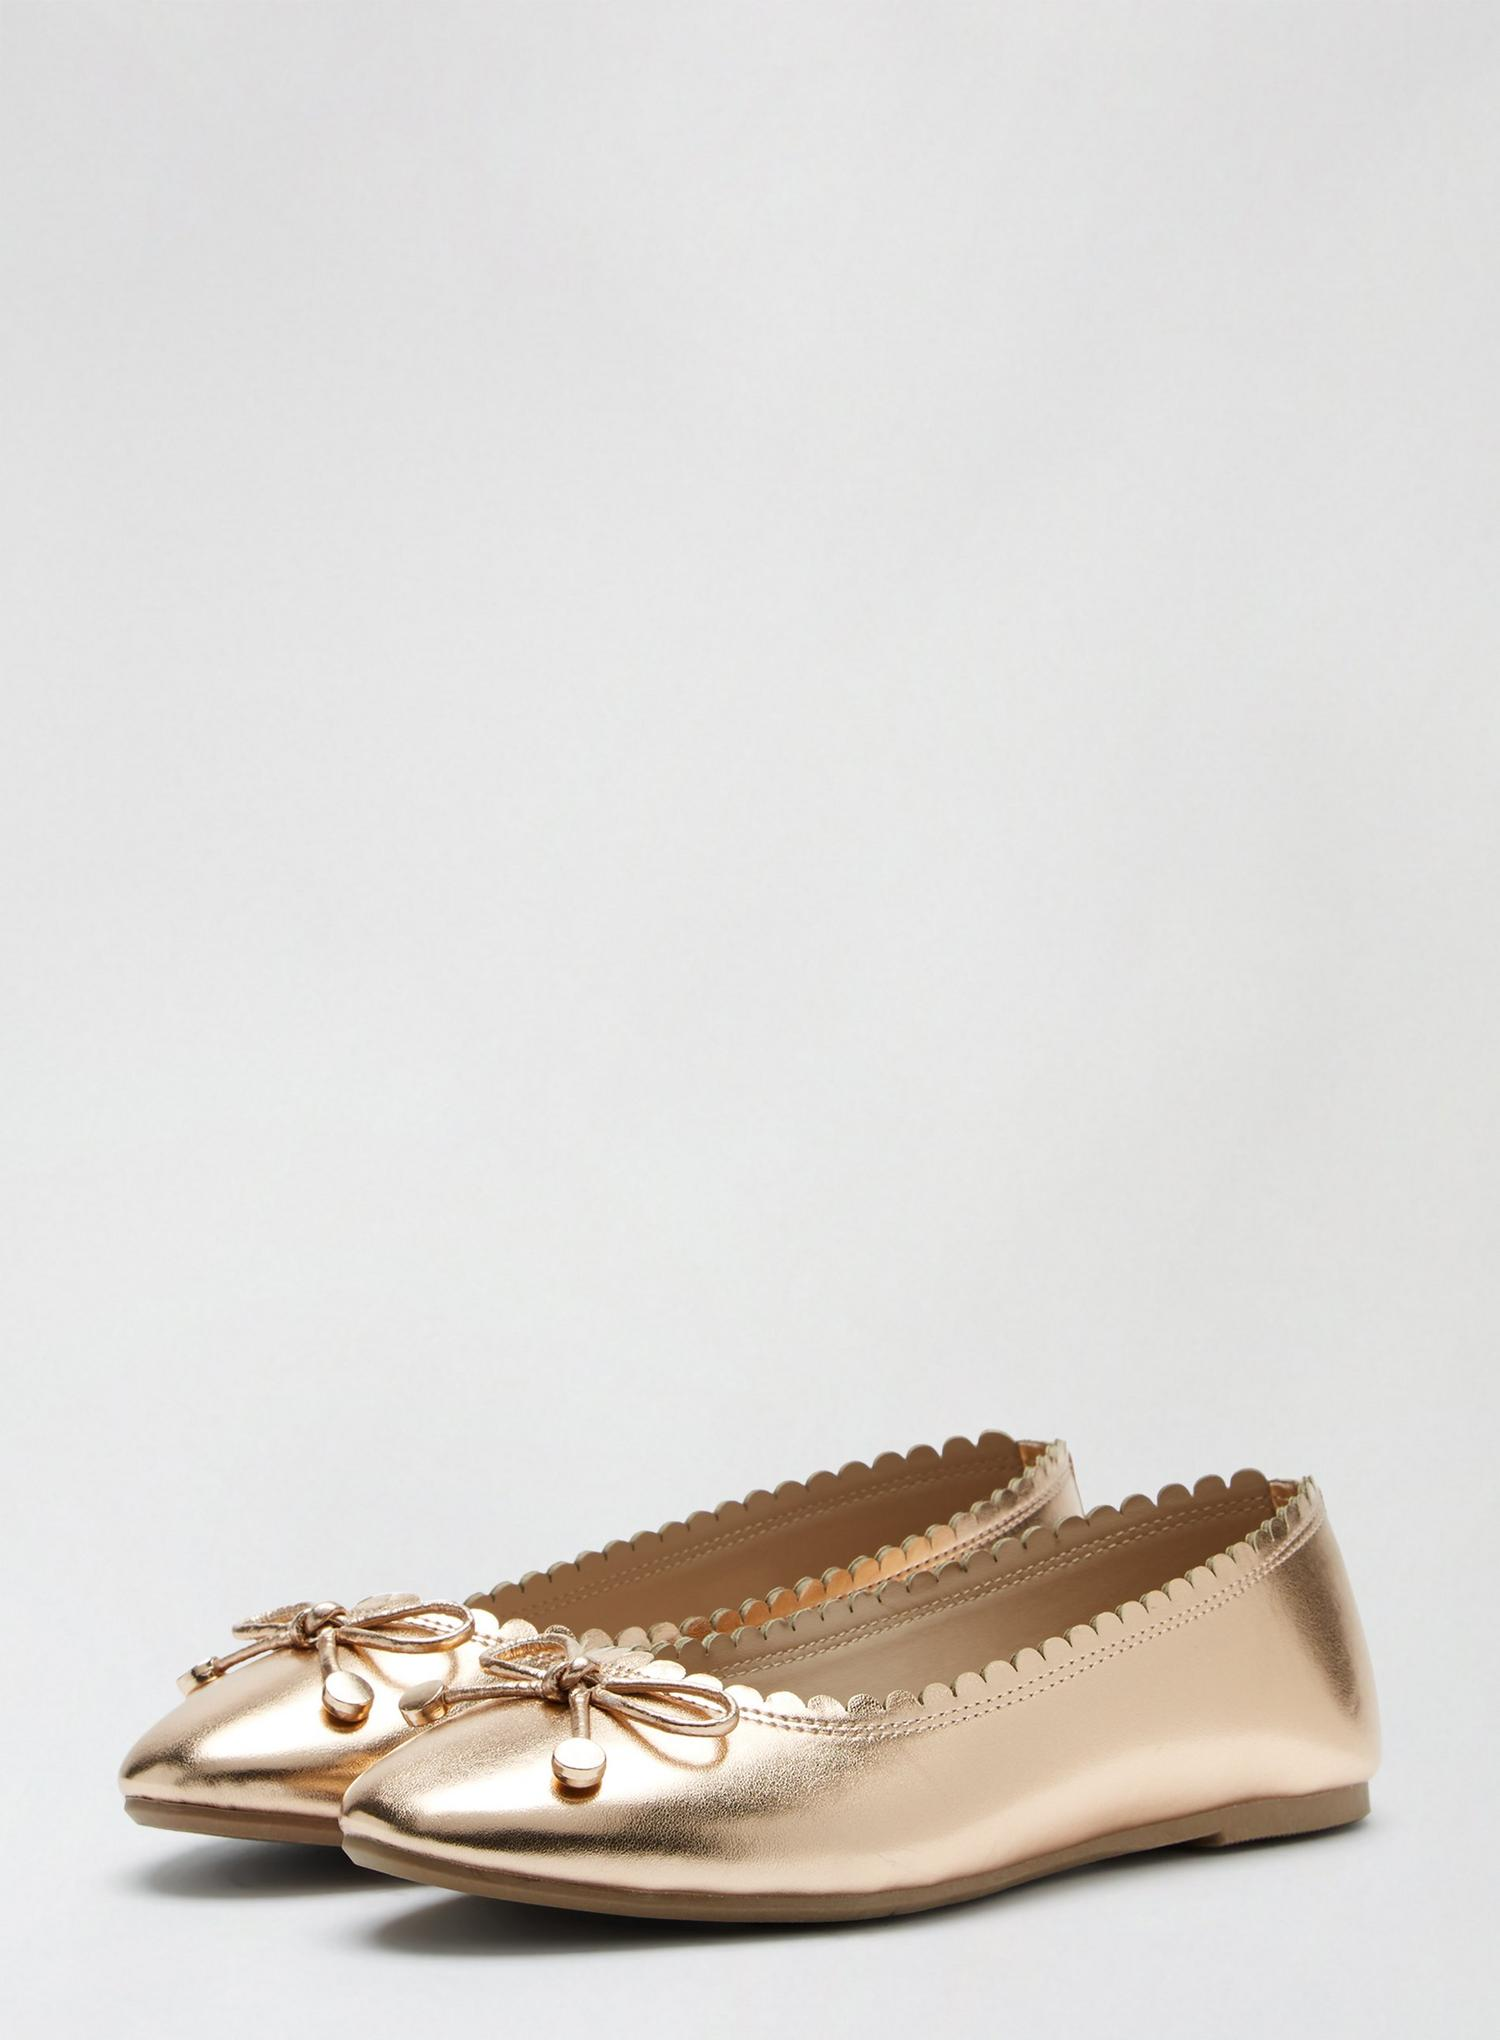 579 Rose Gold Peace Pump image number 1